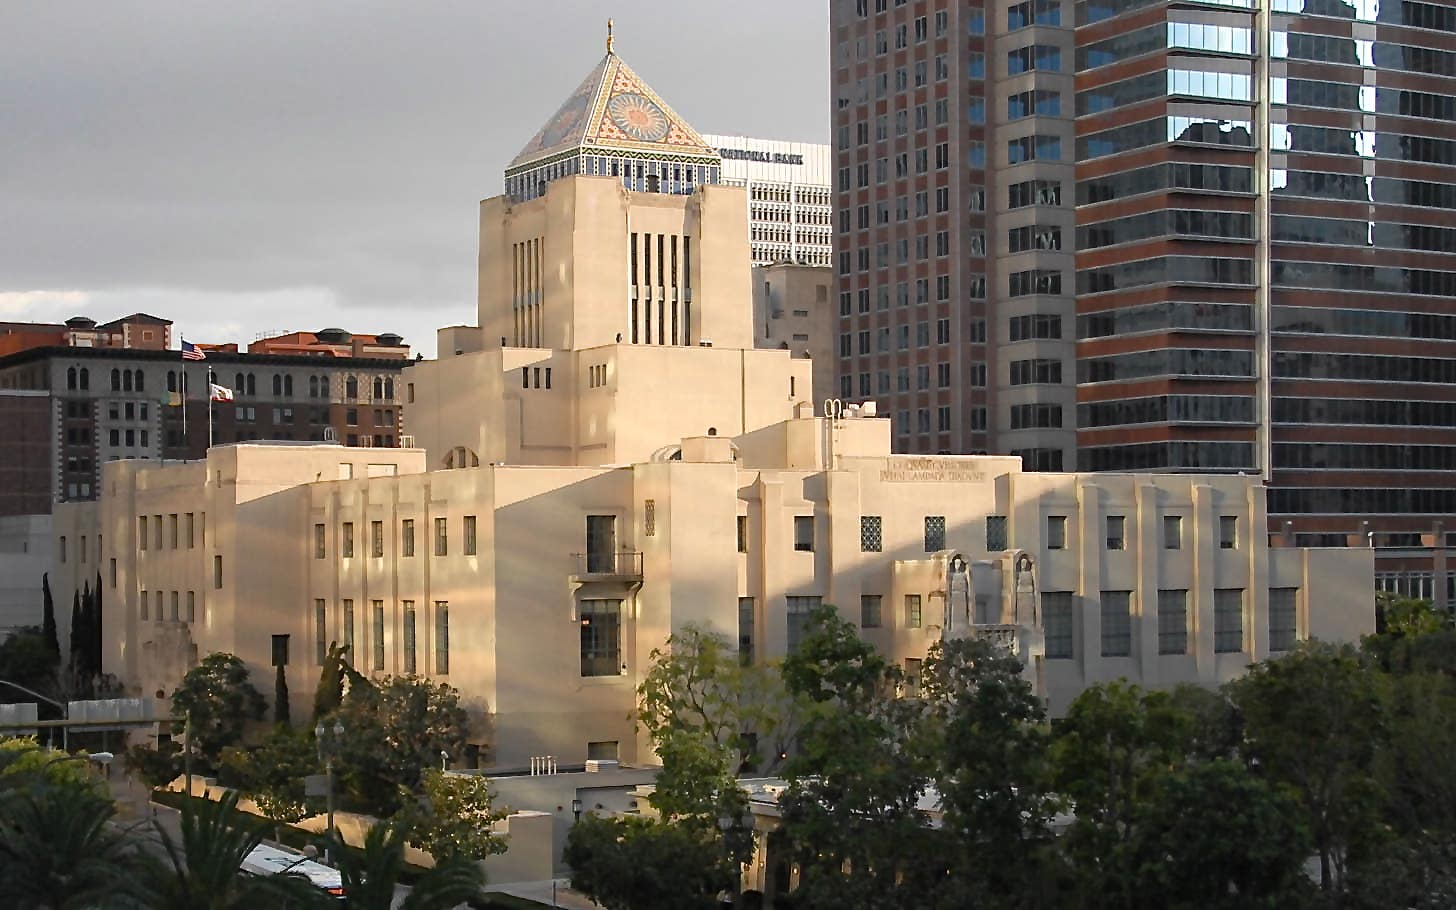 Richard J. Riordan Central Library